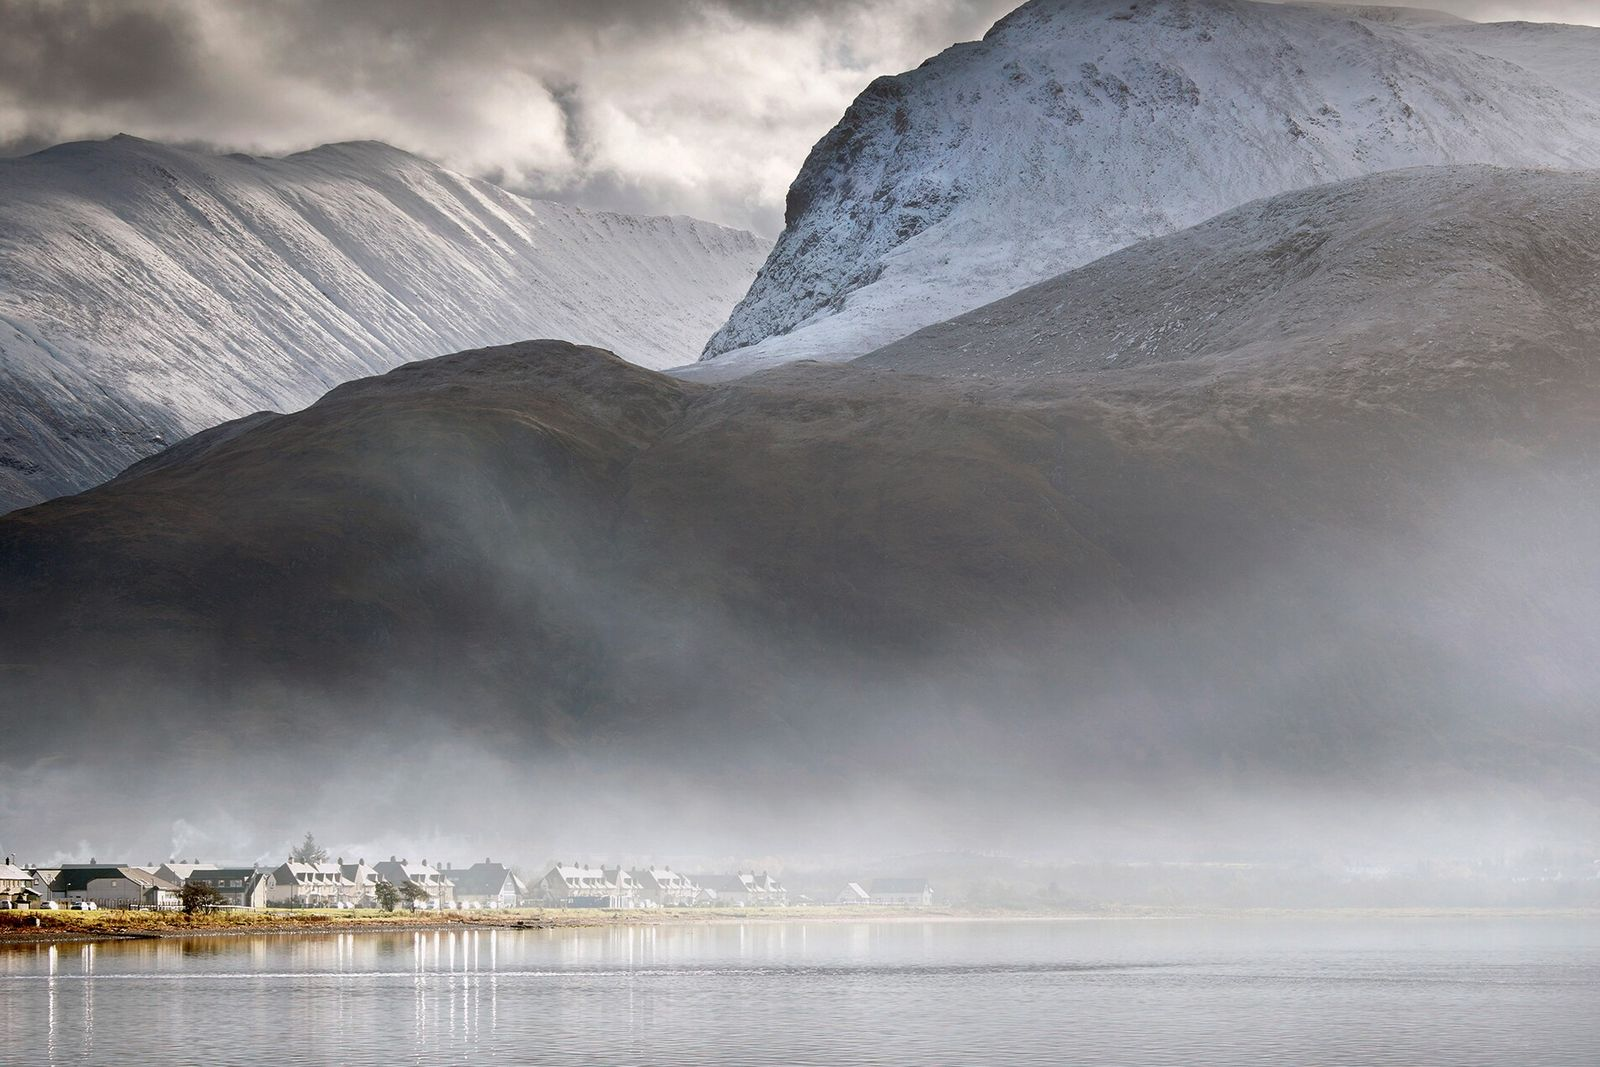 Ben Nevis towering above the village of Caol, near Fort William.